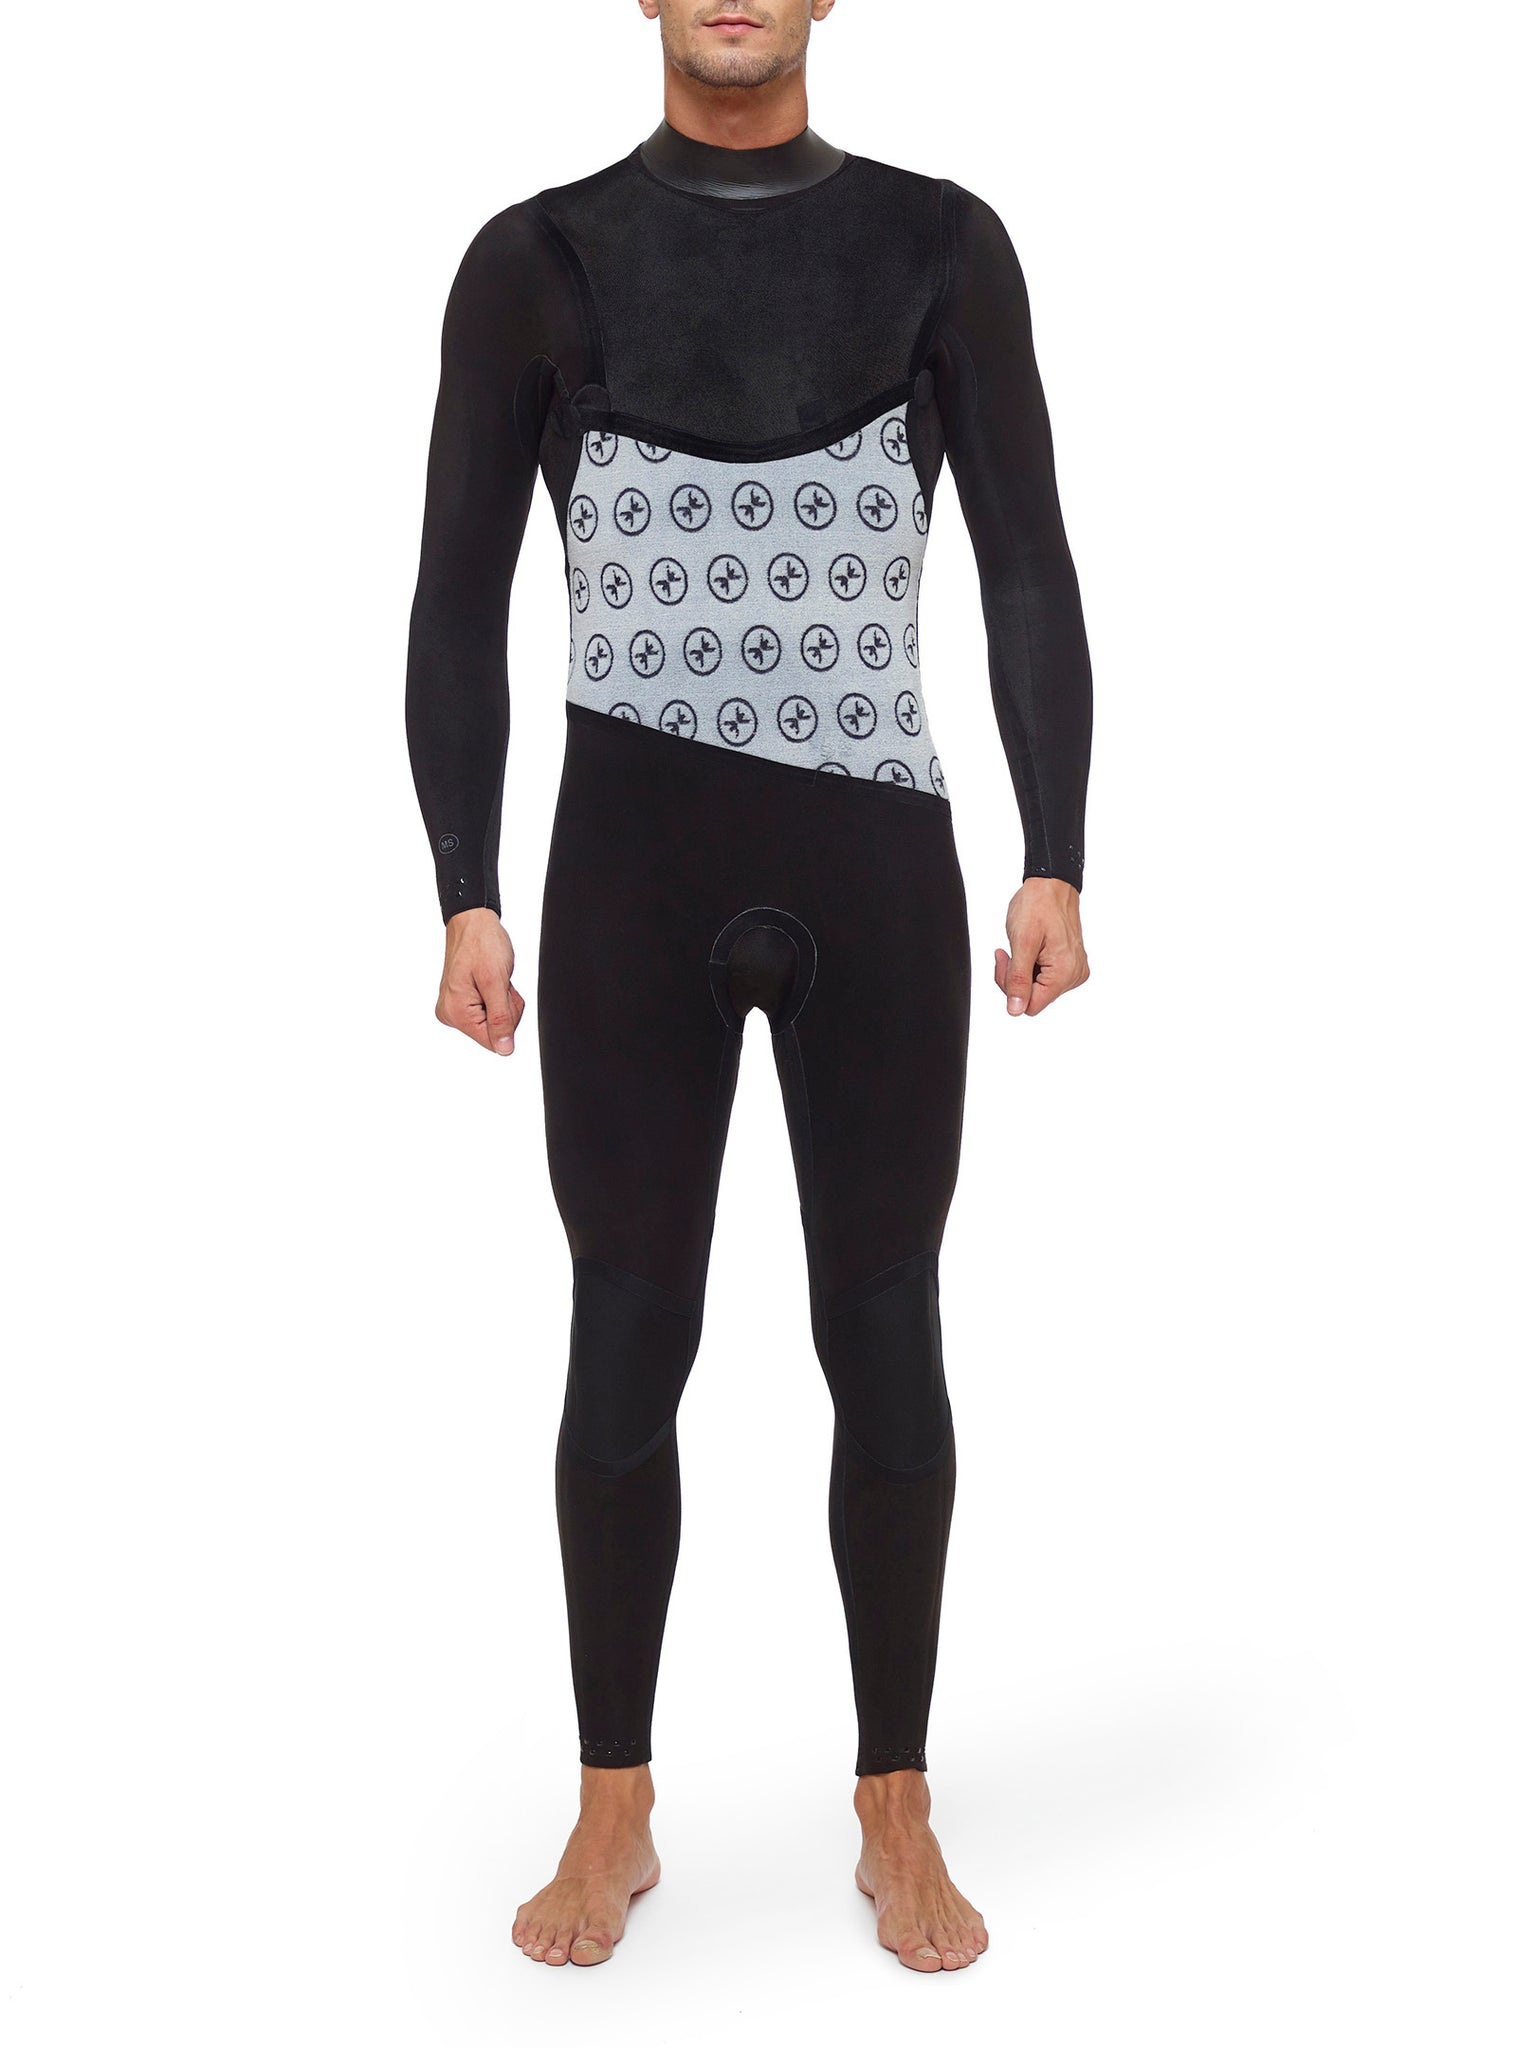 Wetsuit Man Premium 5/3 Chest Zip Black